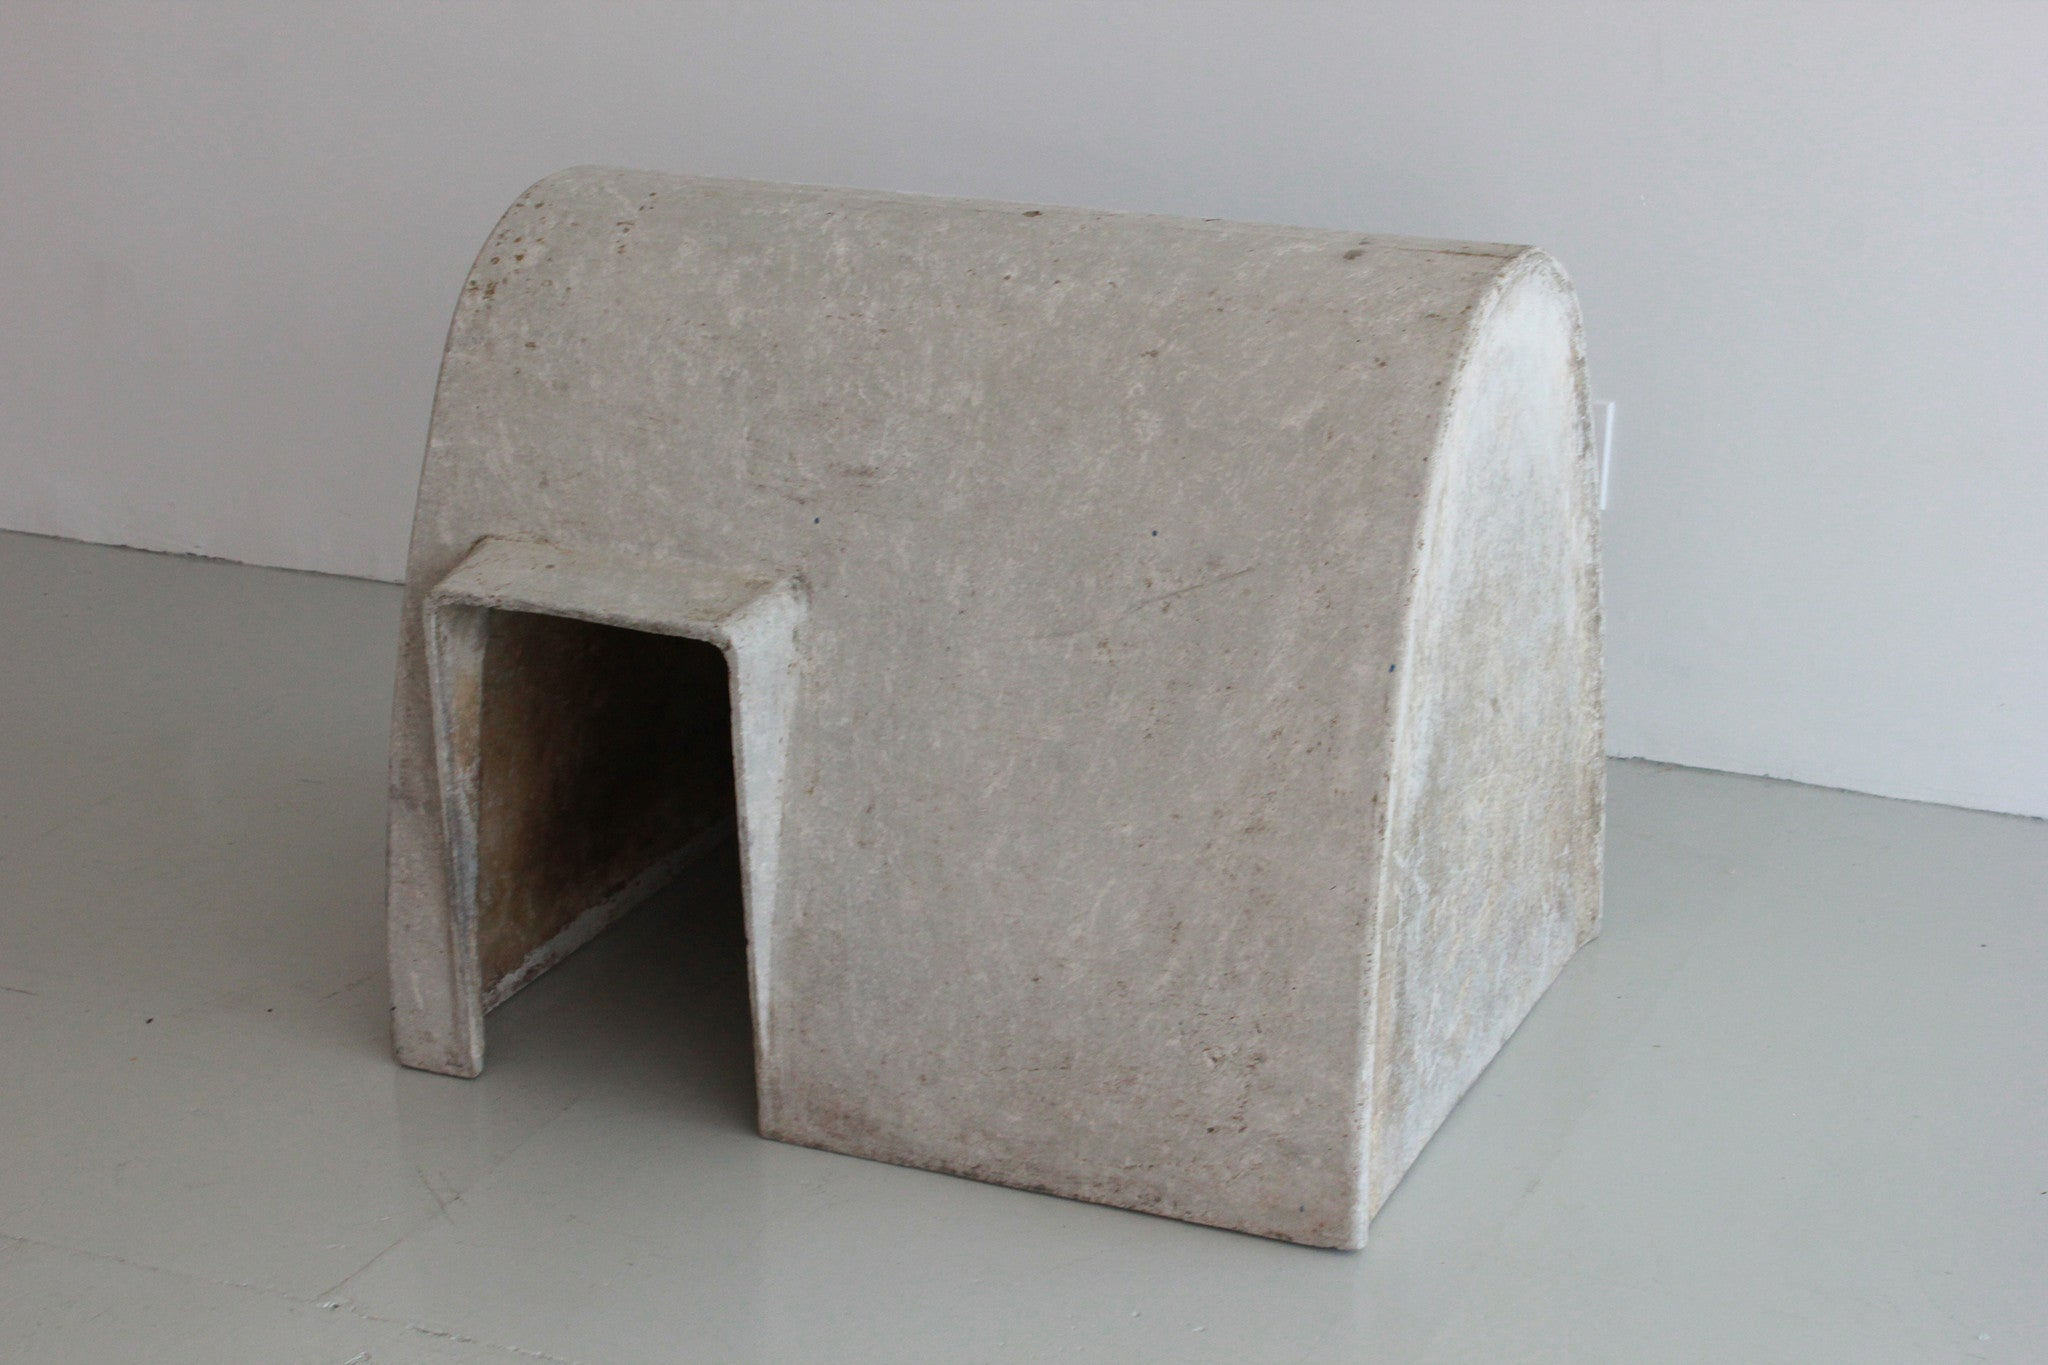 ... Concrete Doghouse By Willy Guhl ...